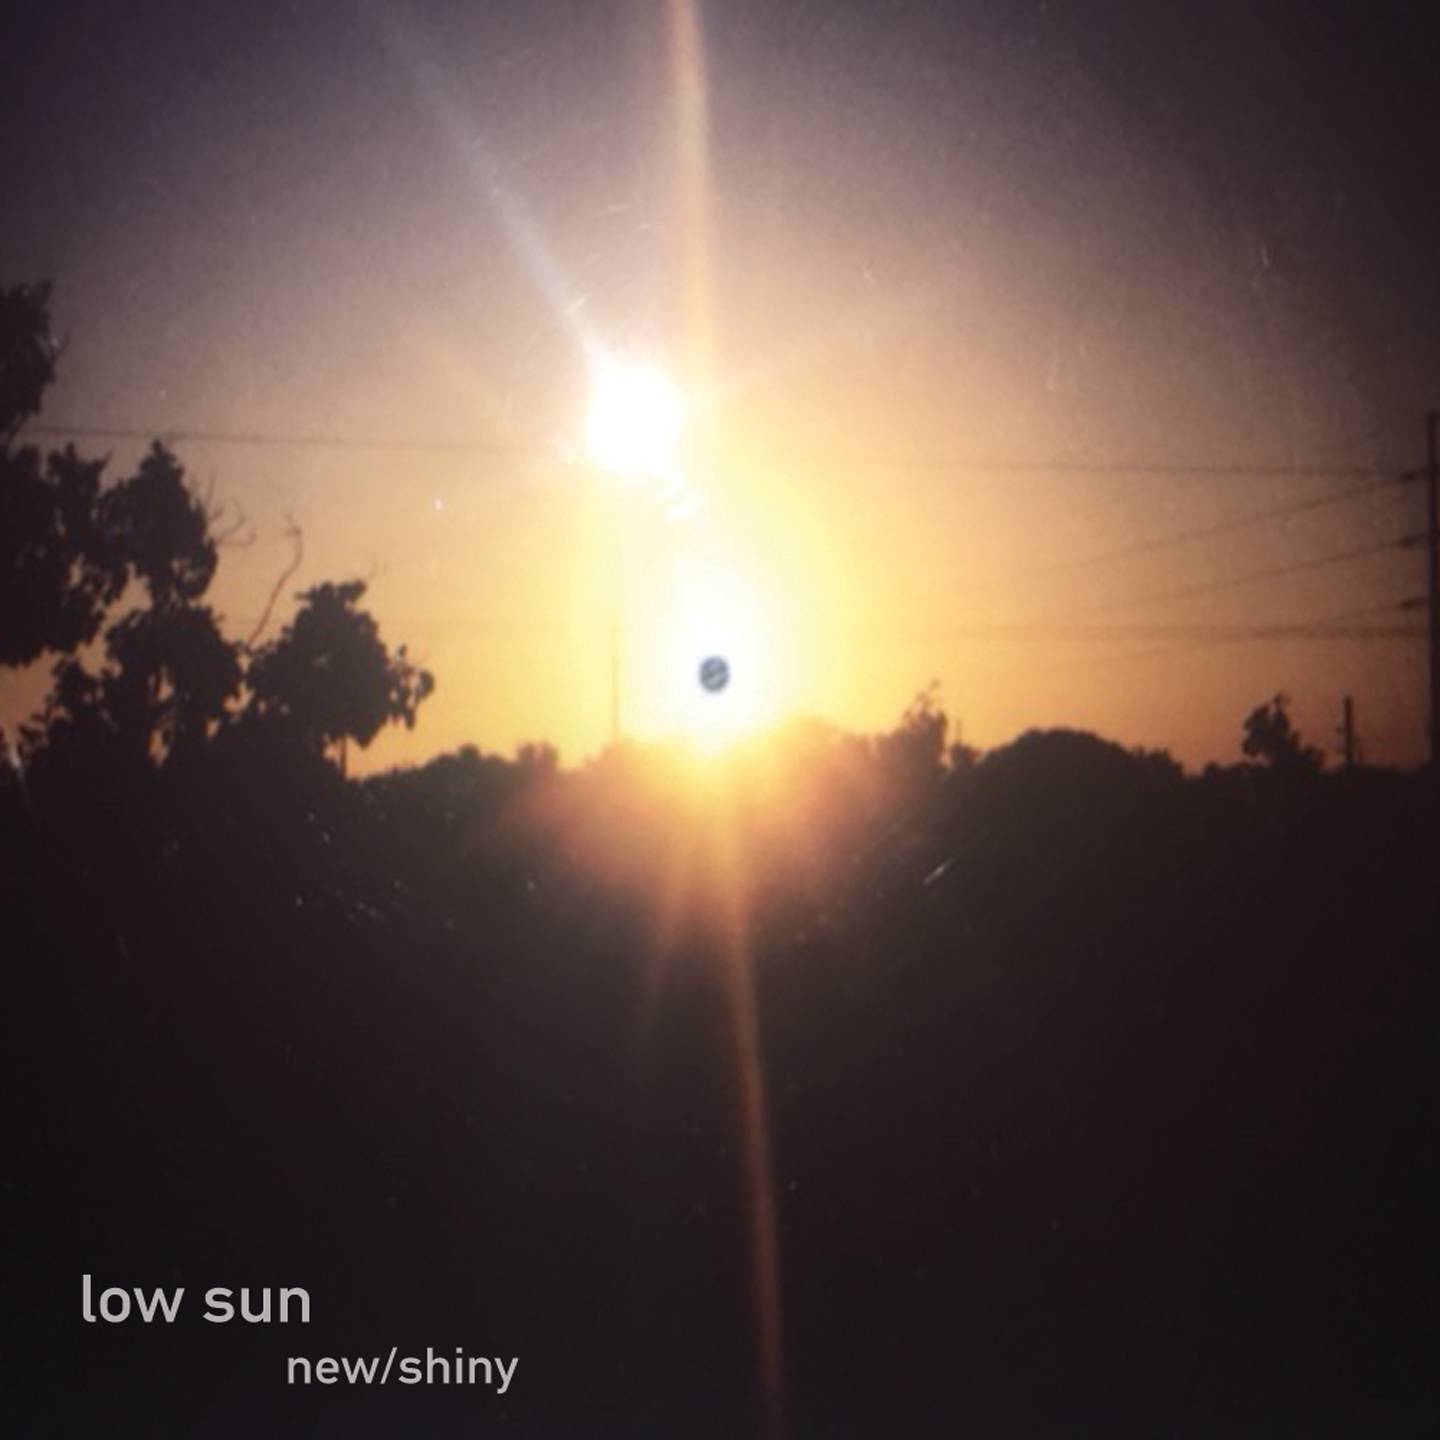 Low Sun- new/shiny (UB 23)